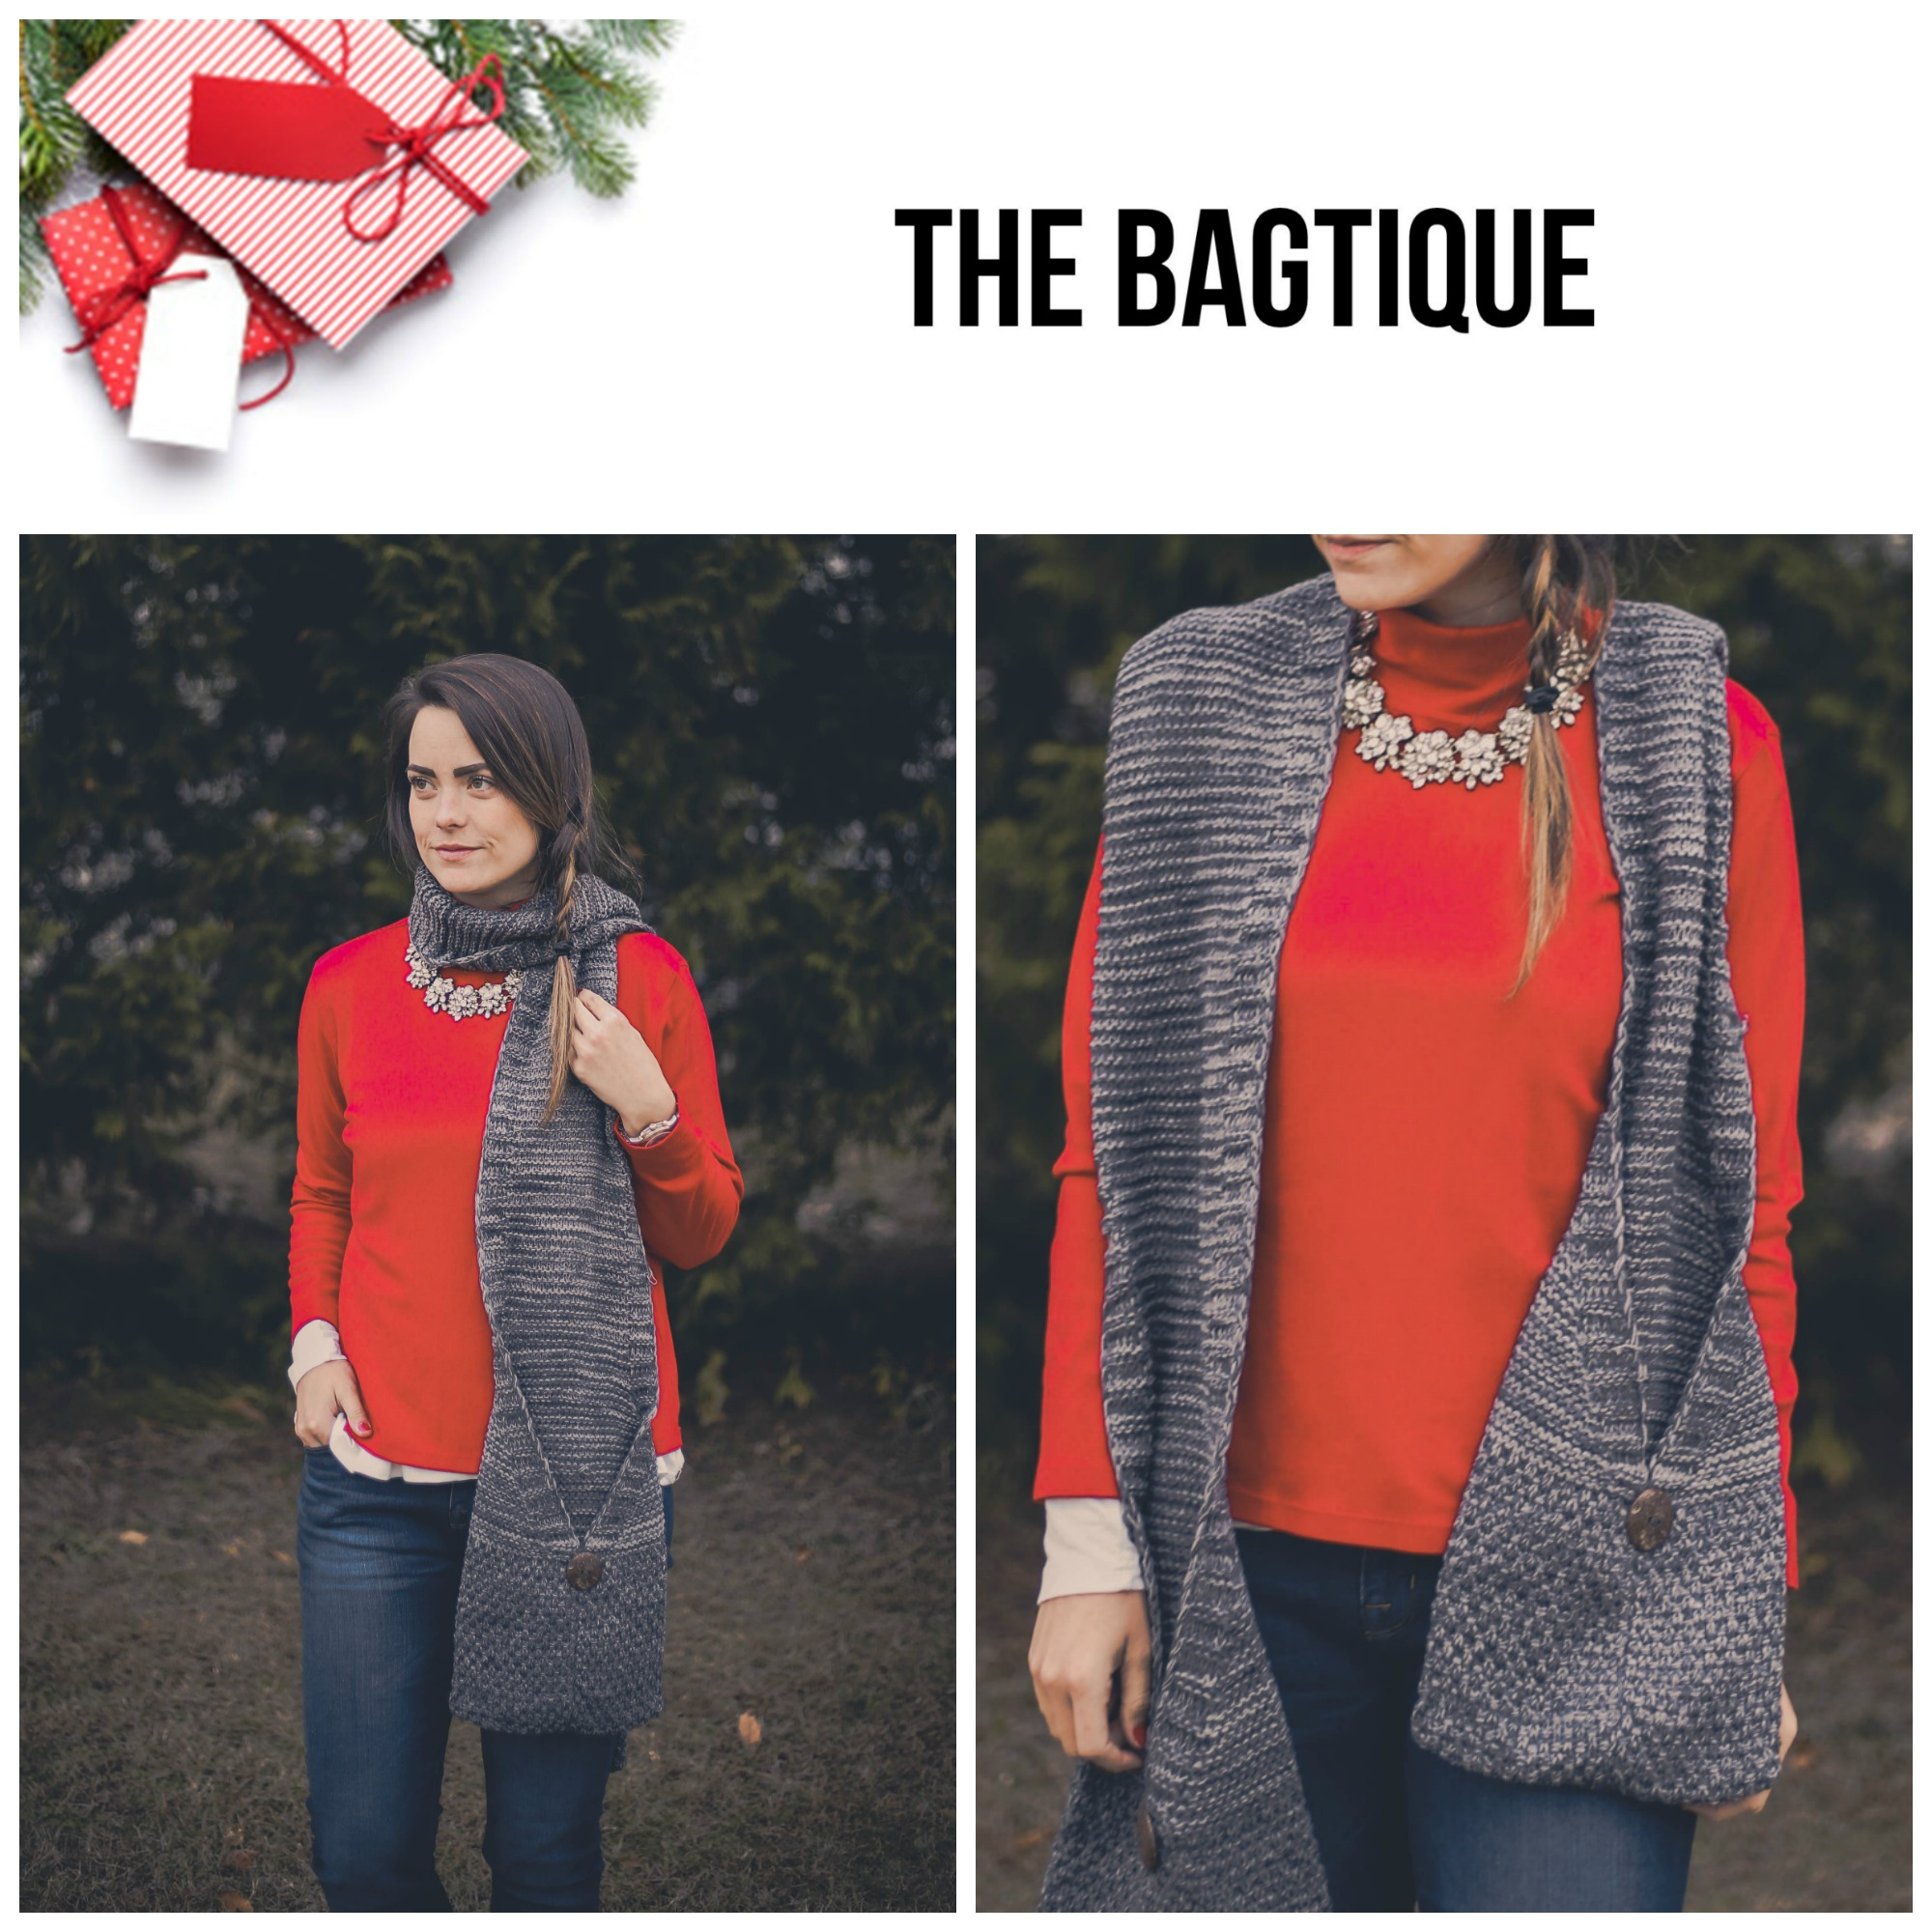 The Bagtique Shop Small Business